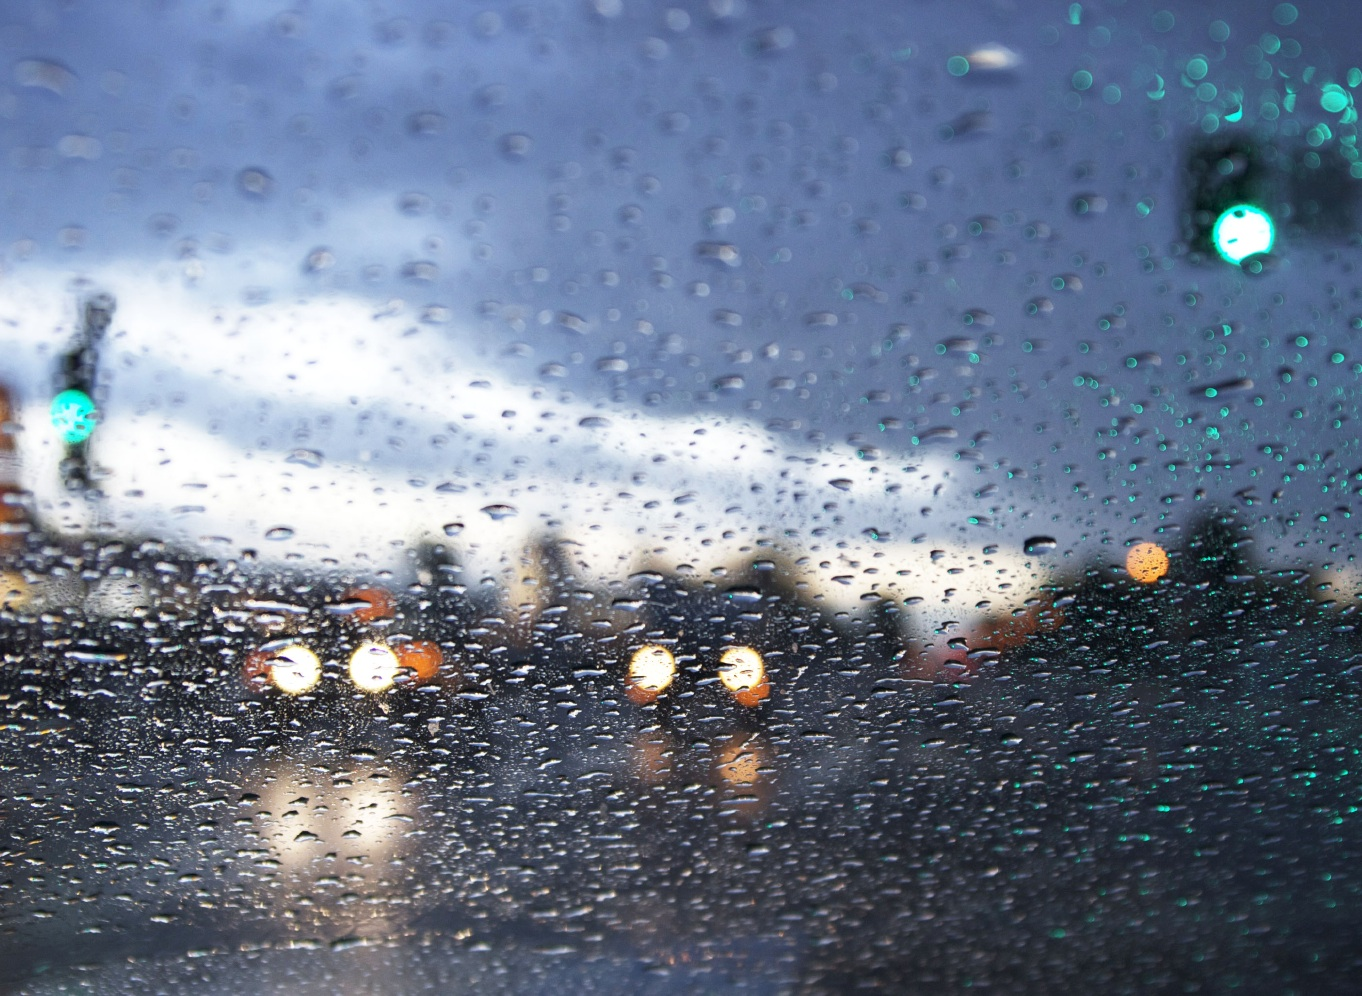 Rainy-Windshield